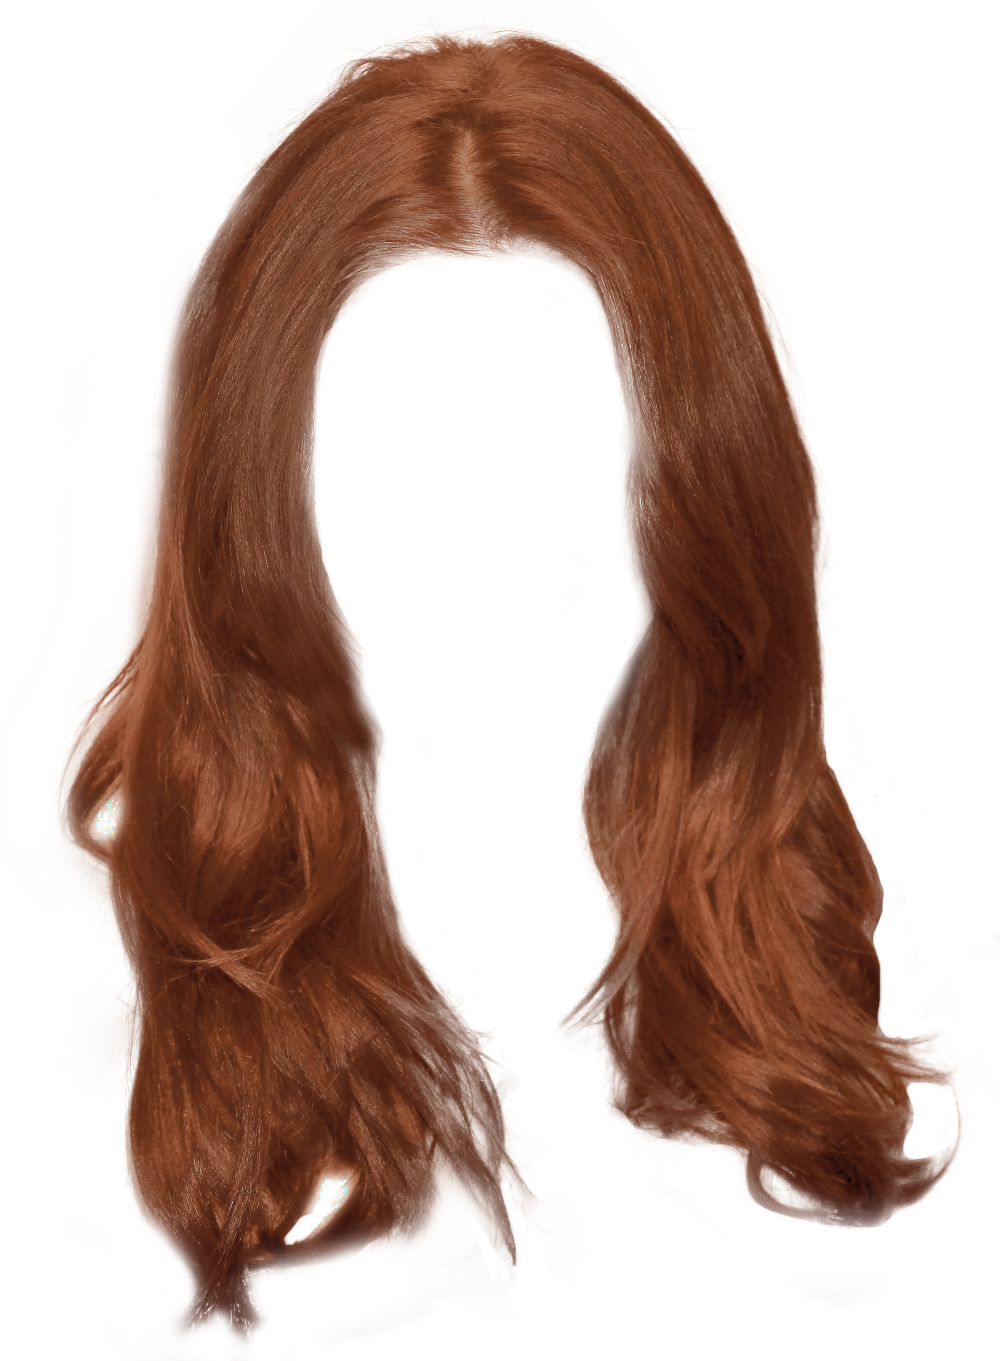 Free Hair Png Transparent, Download Free Clip Art, Free Clip.